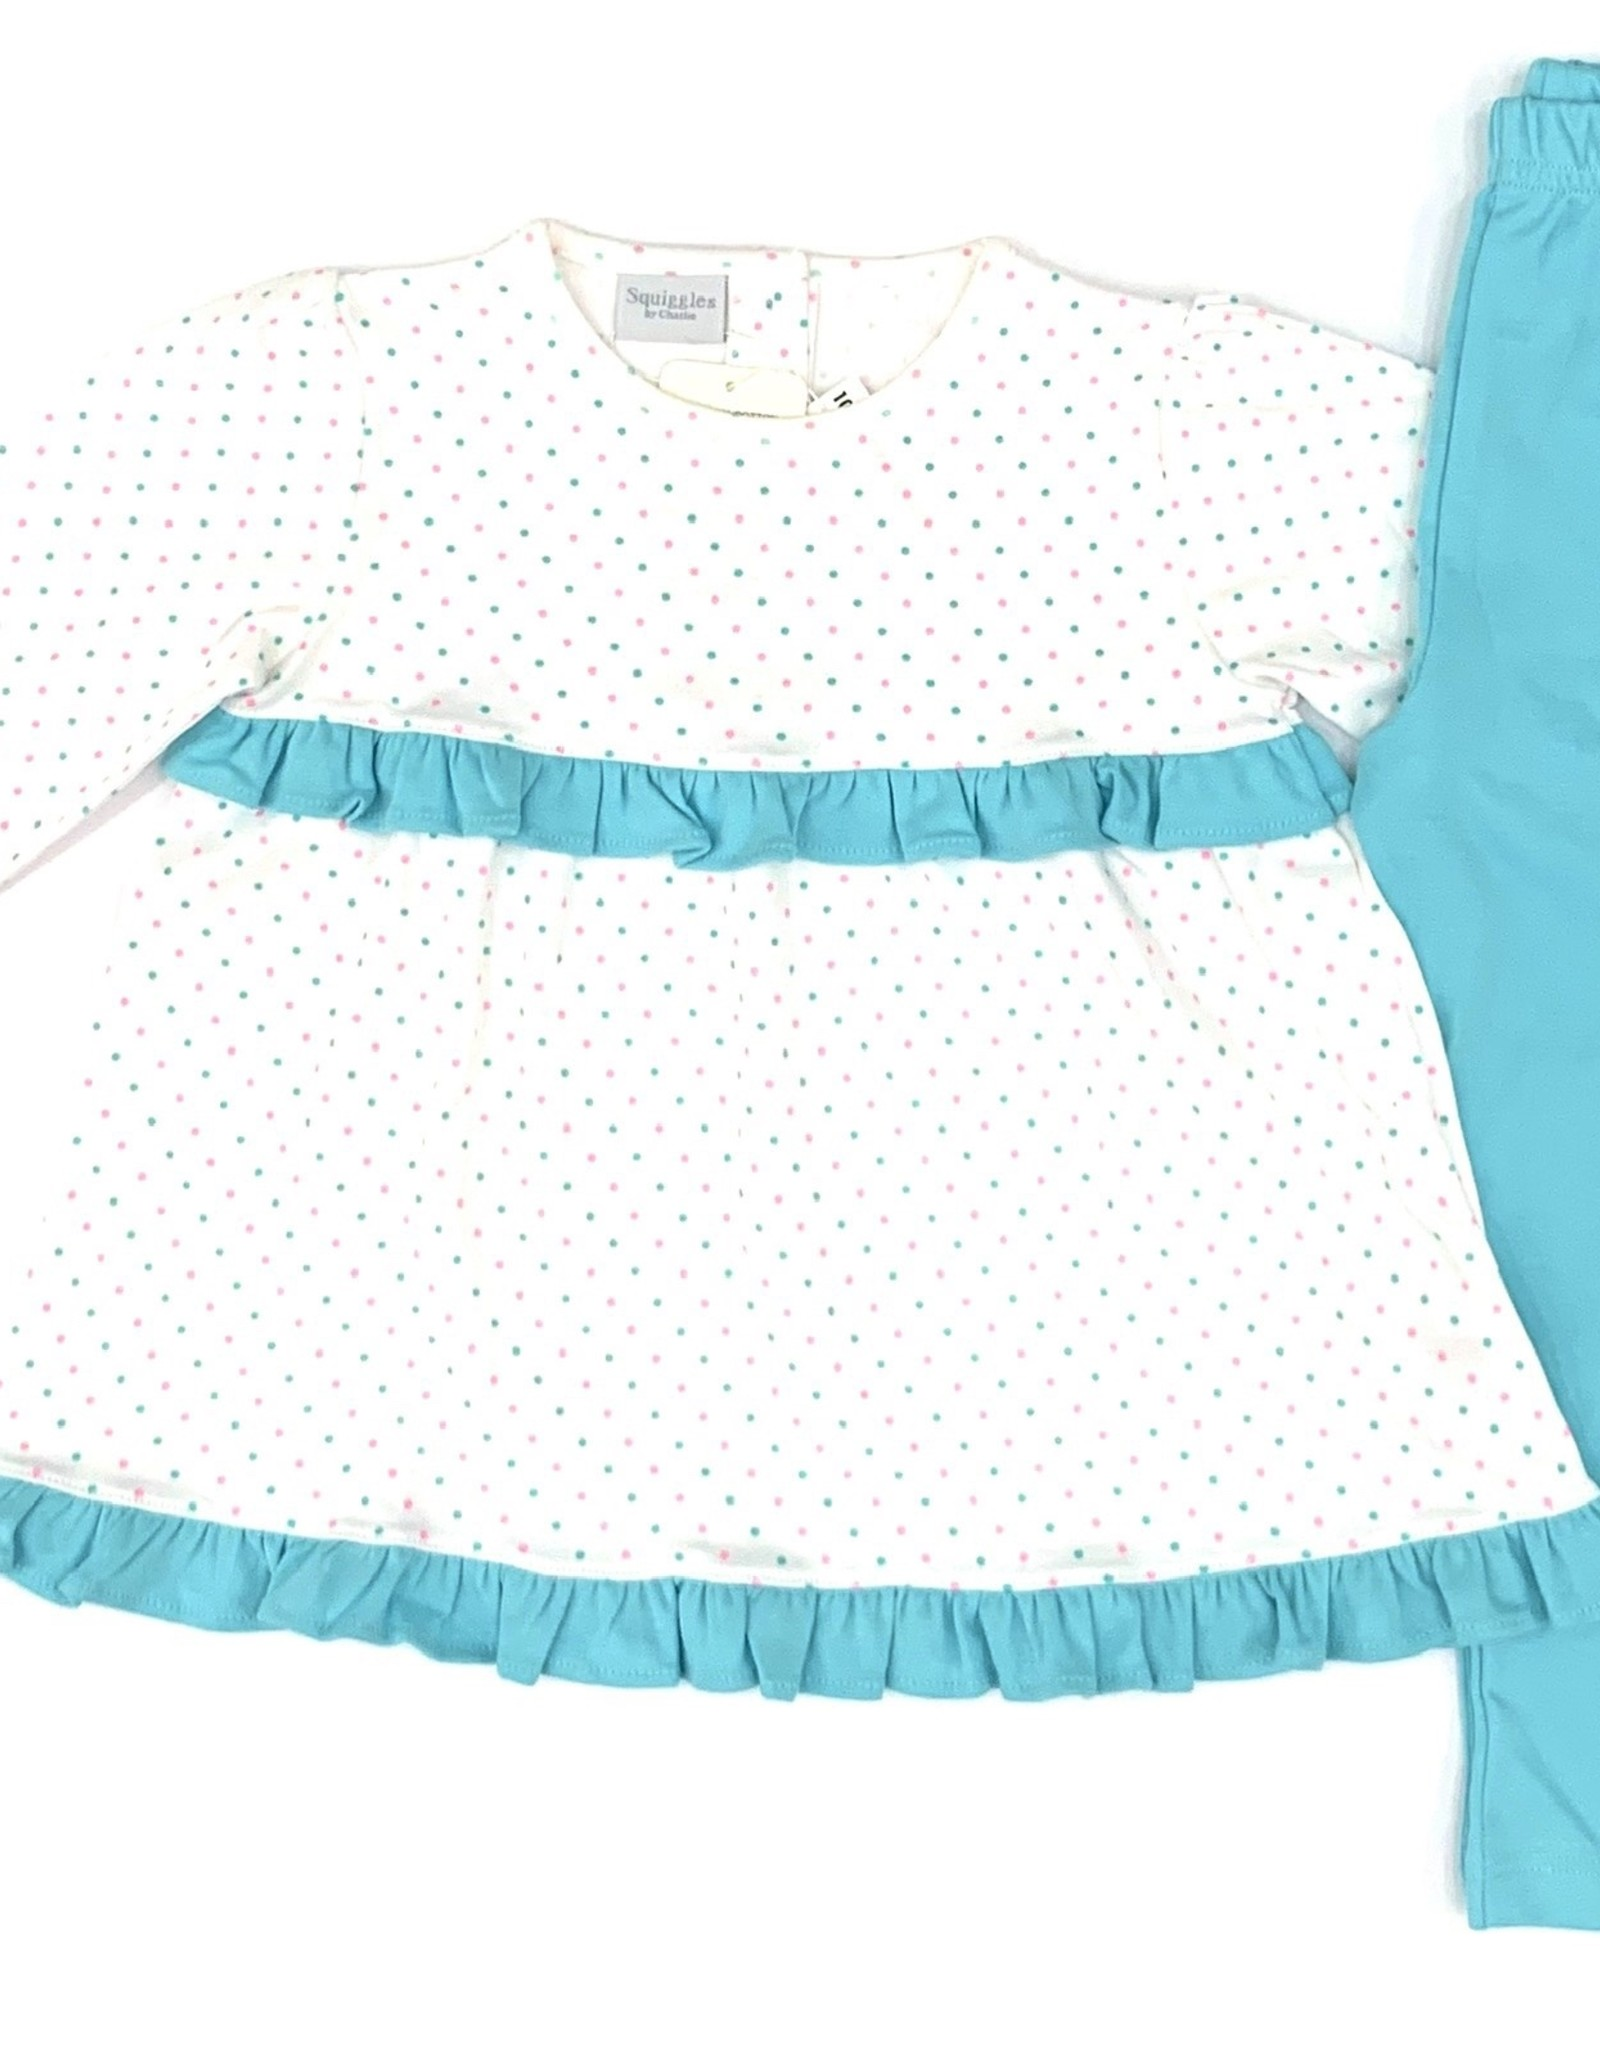 Squiggles Squiggles Long Sleeve Pant Sets